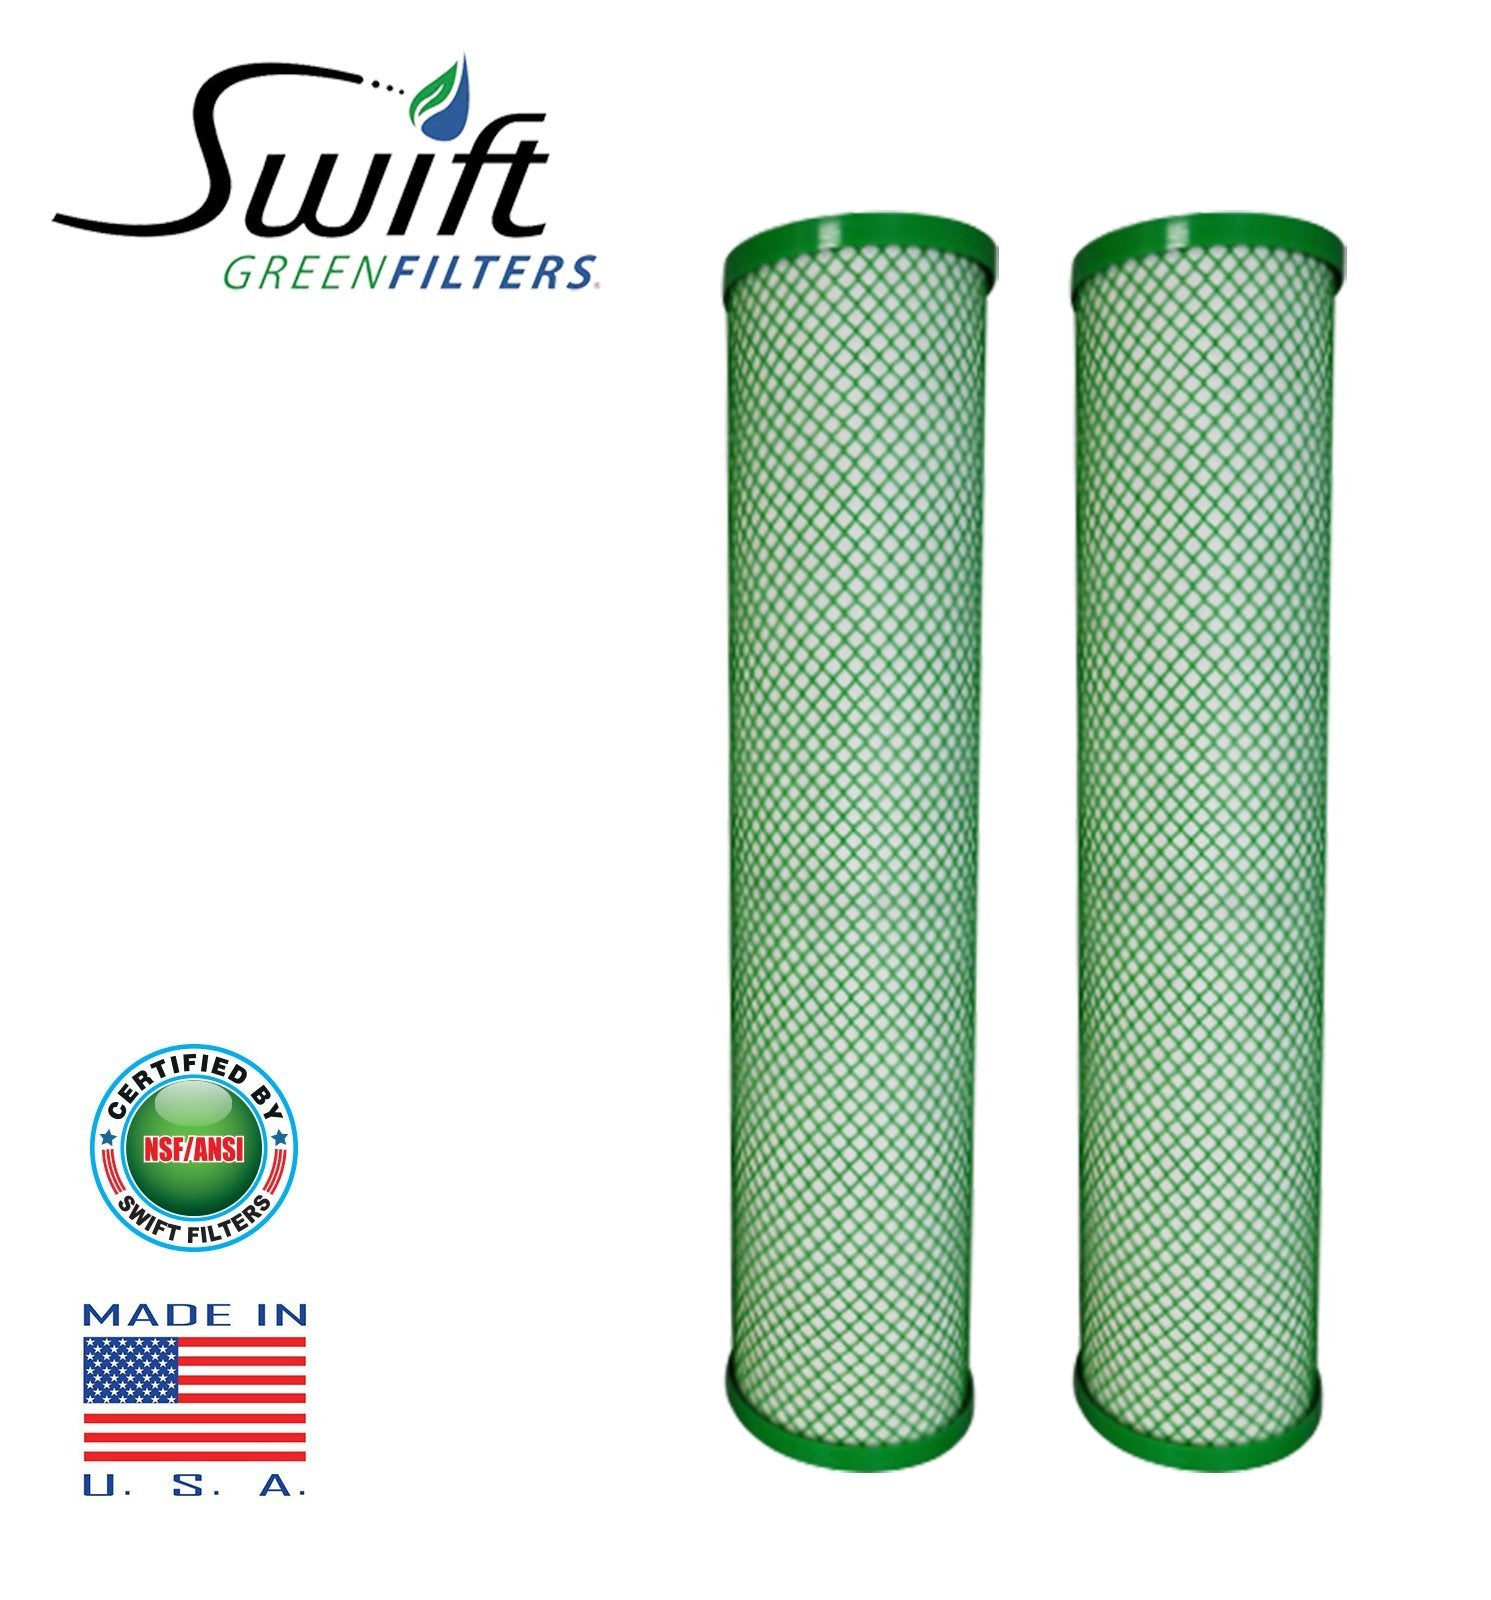 "Swift (SGFB10CL2) 9.75""x 4.5"" CL2 Green Block Carbon Filter 10 Micron By Swift Green Filters - The Filters Club"